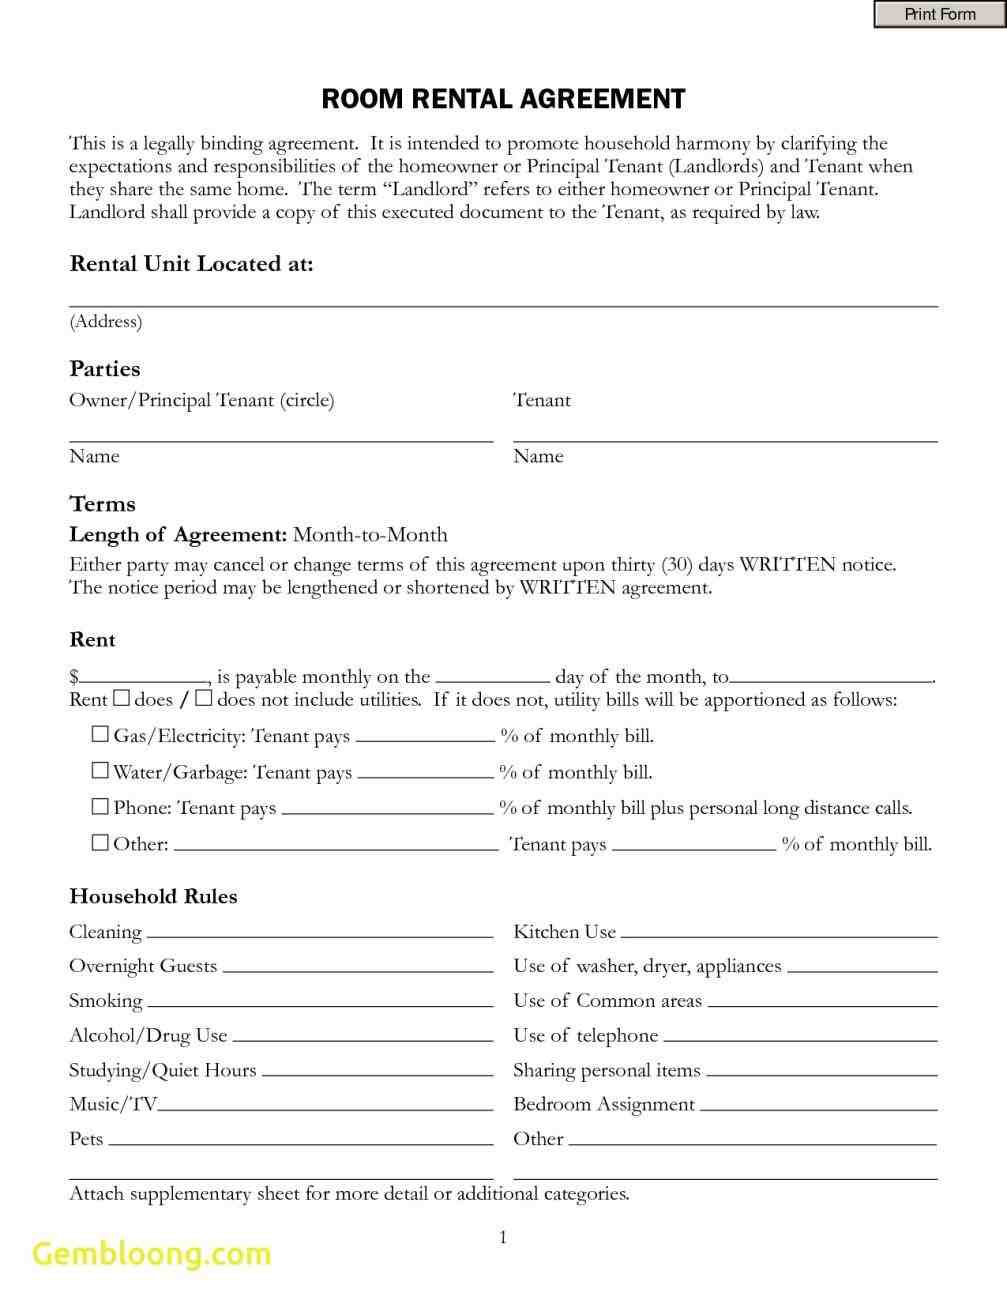 5 Resources To Get Free Fax Word Templates planner template free download best of top resources to rhzooryxus fresh rental